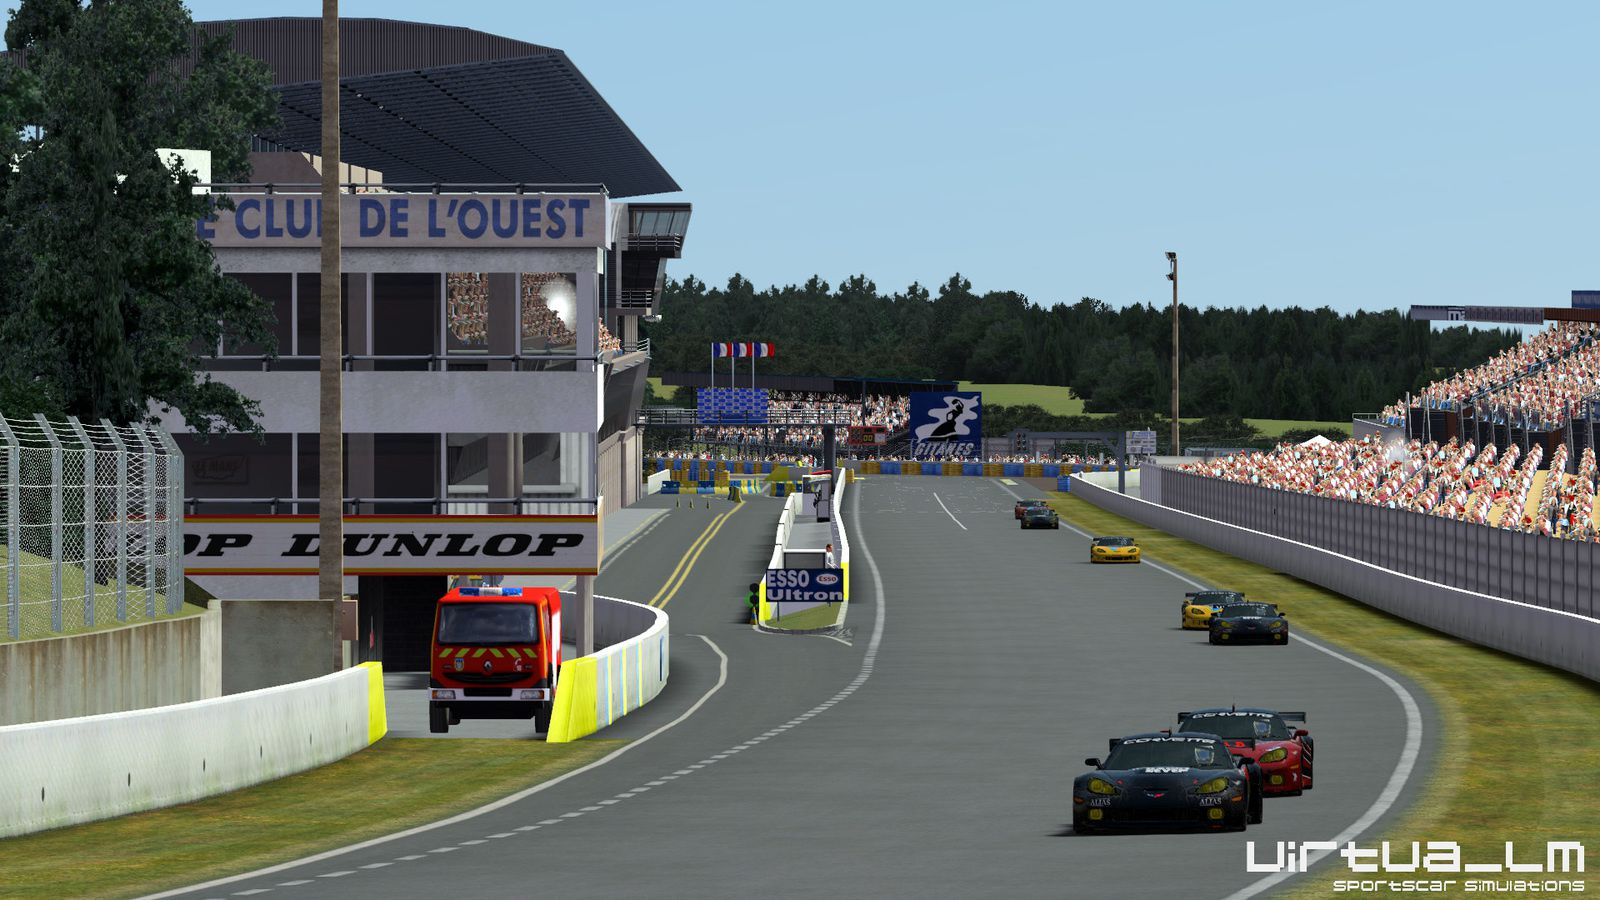 rFactor 2 circuit Le Mans 1991-1996 1 0 disponible ! - The Racing Line